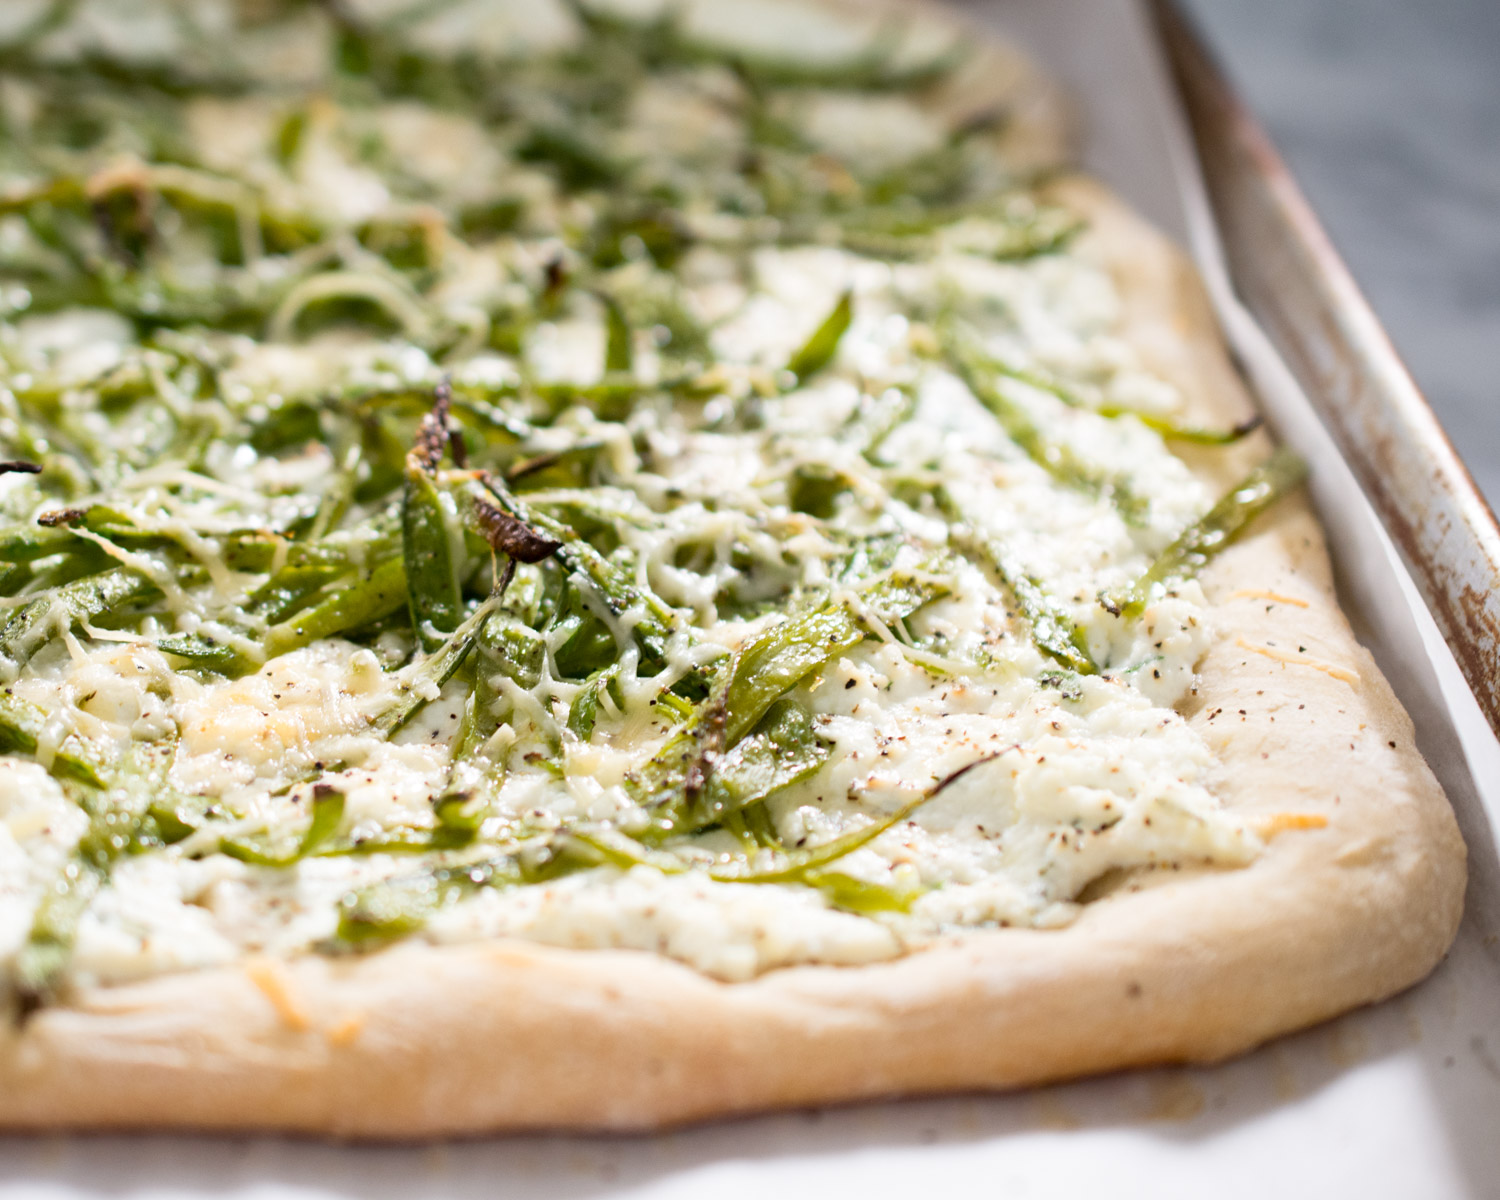 Pea and herbed ricotta pizza - just out of the oven!